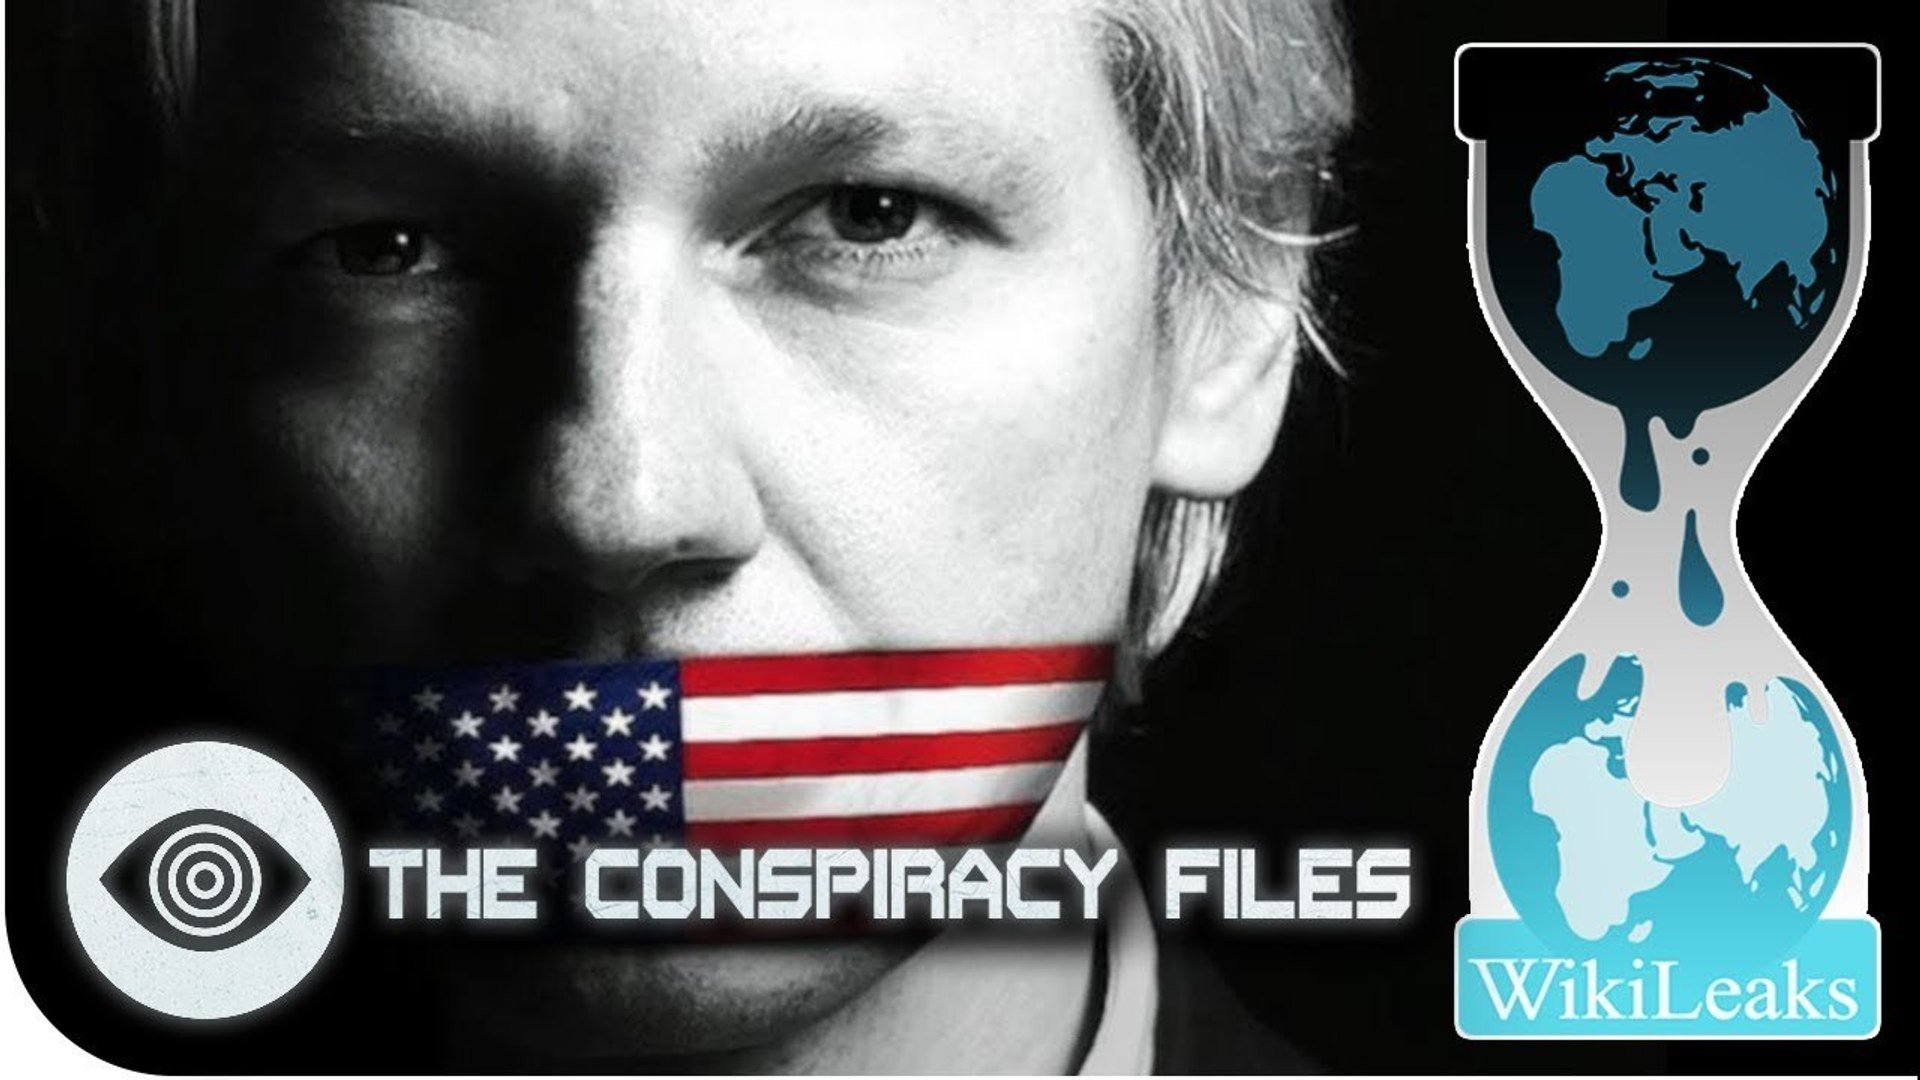 Wikileaks | The Conspiracy Files